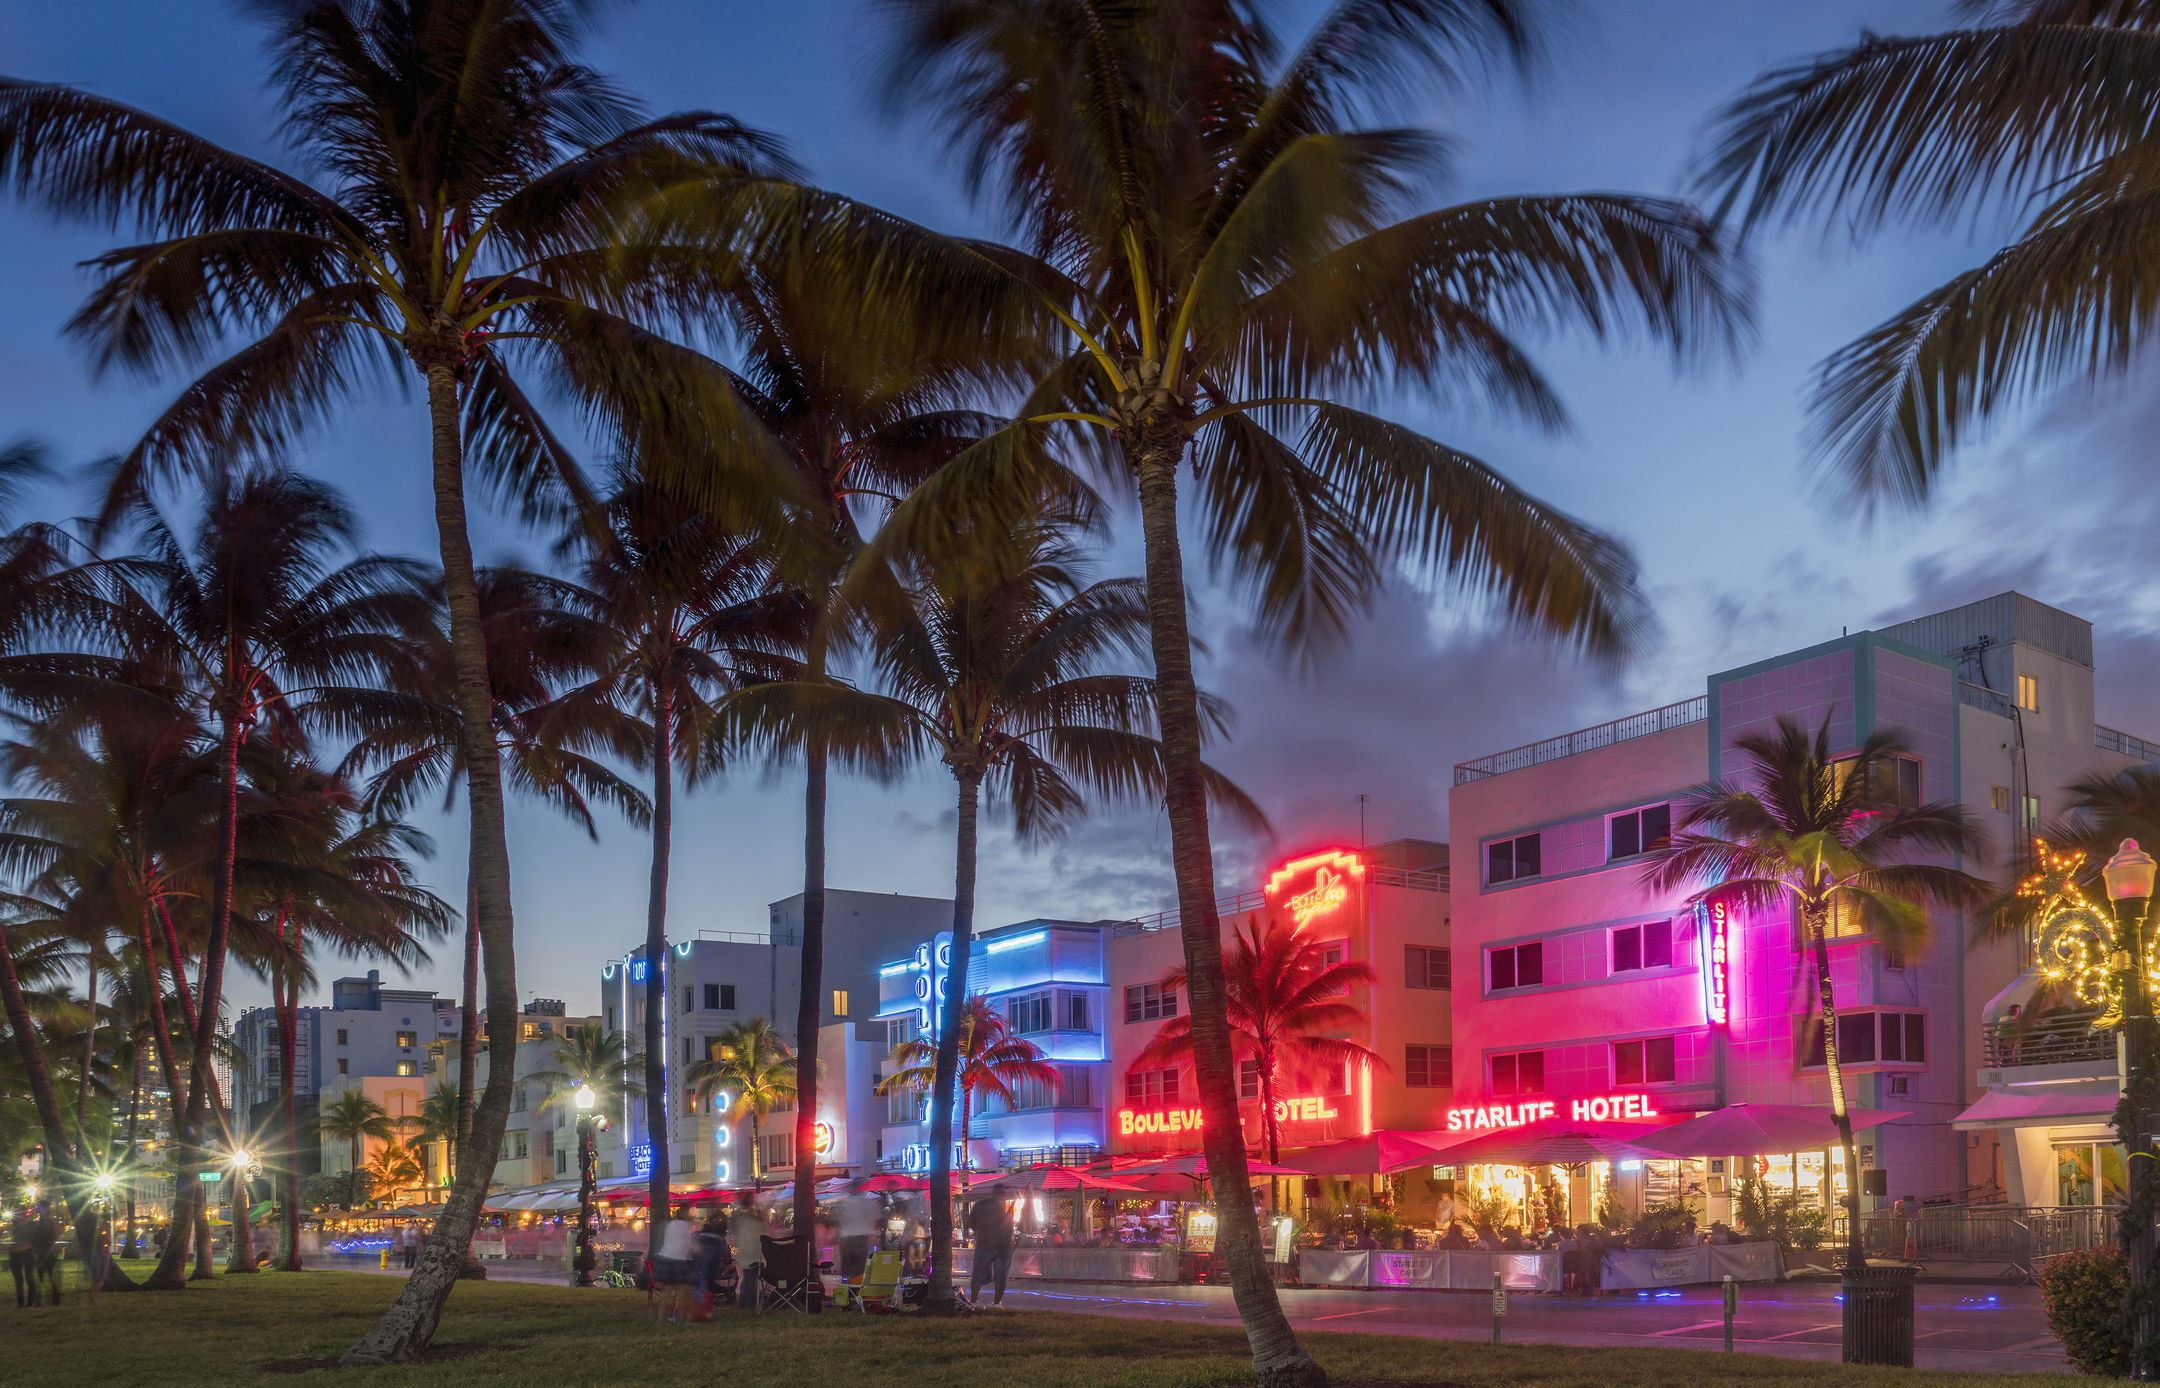 Fun Restaurants In South Beach Miami